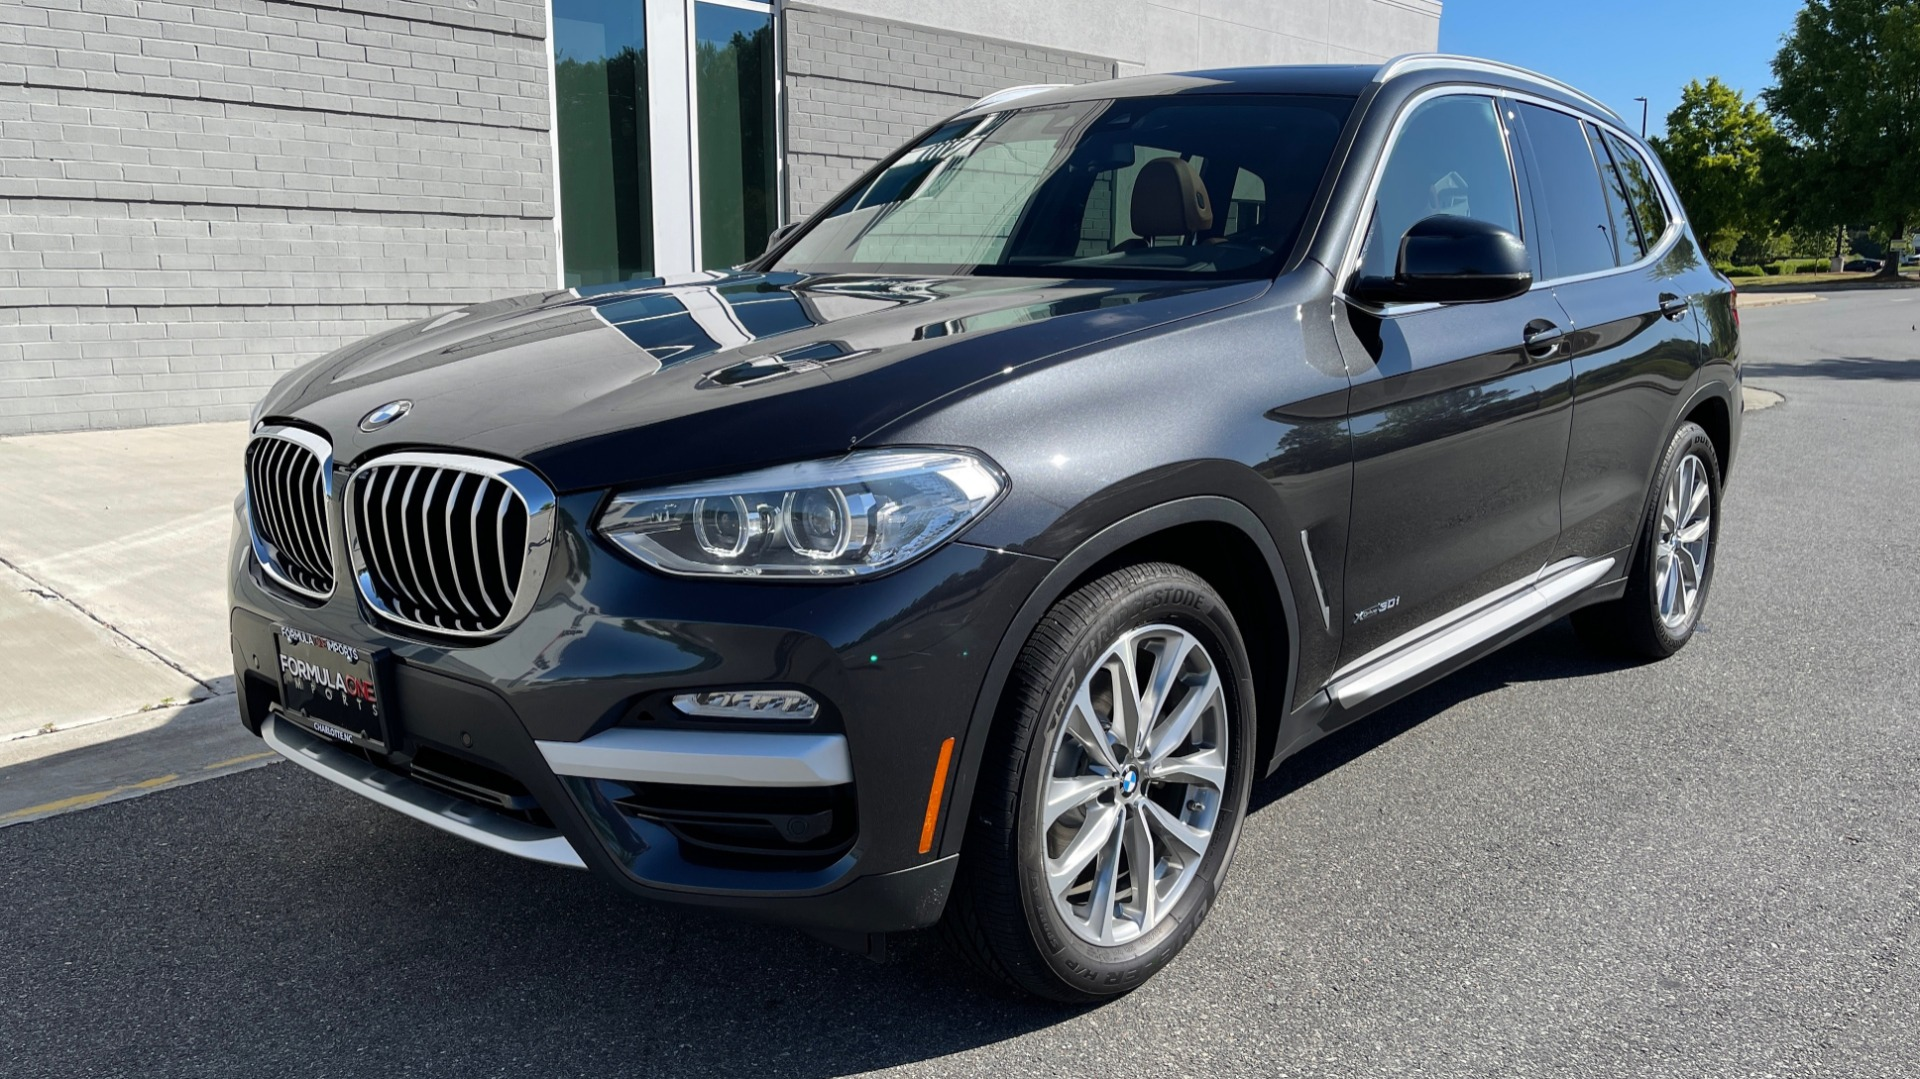 Used 2018 BMW X3 XDRIVE30I PREMIUM / NAV / DRVR ASST PLUS / CONV PKG / SUNROOF / REARVIEW for sale $33,795 at Formula Imports in Charlotte NC 28227 4